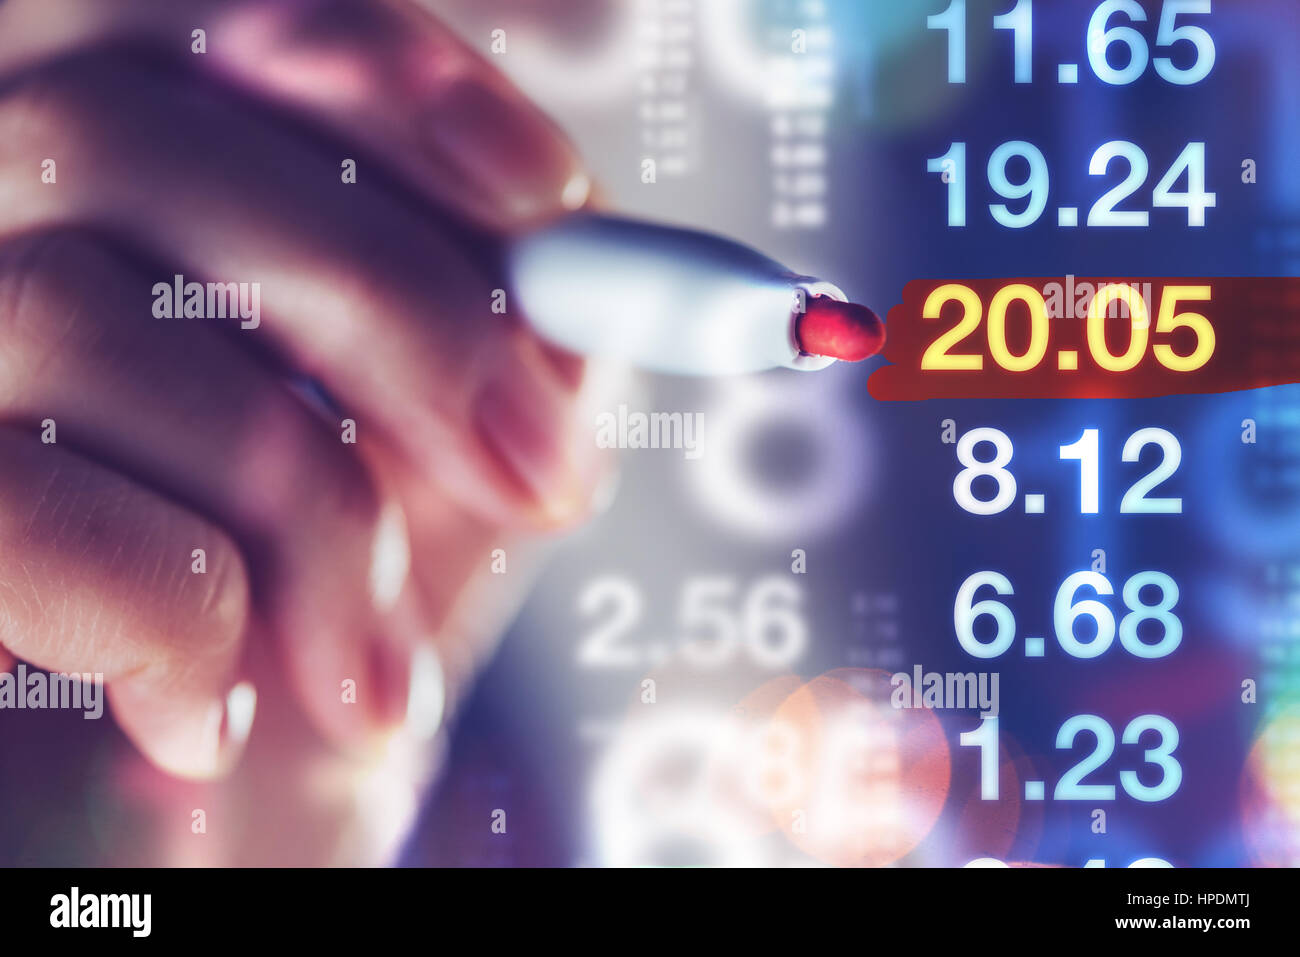 Businesswoman tracking stock market indicators, business trade and economy concept - Stock Image